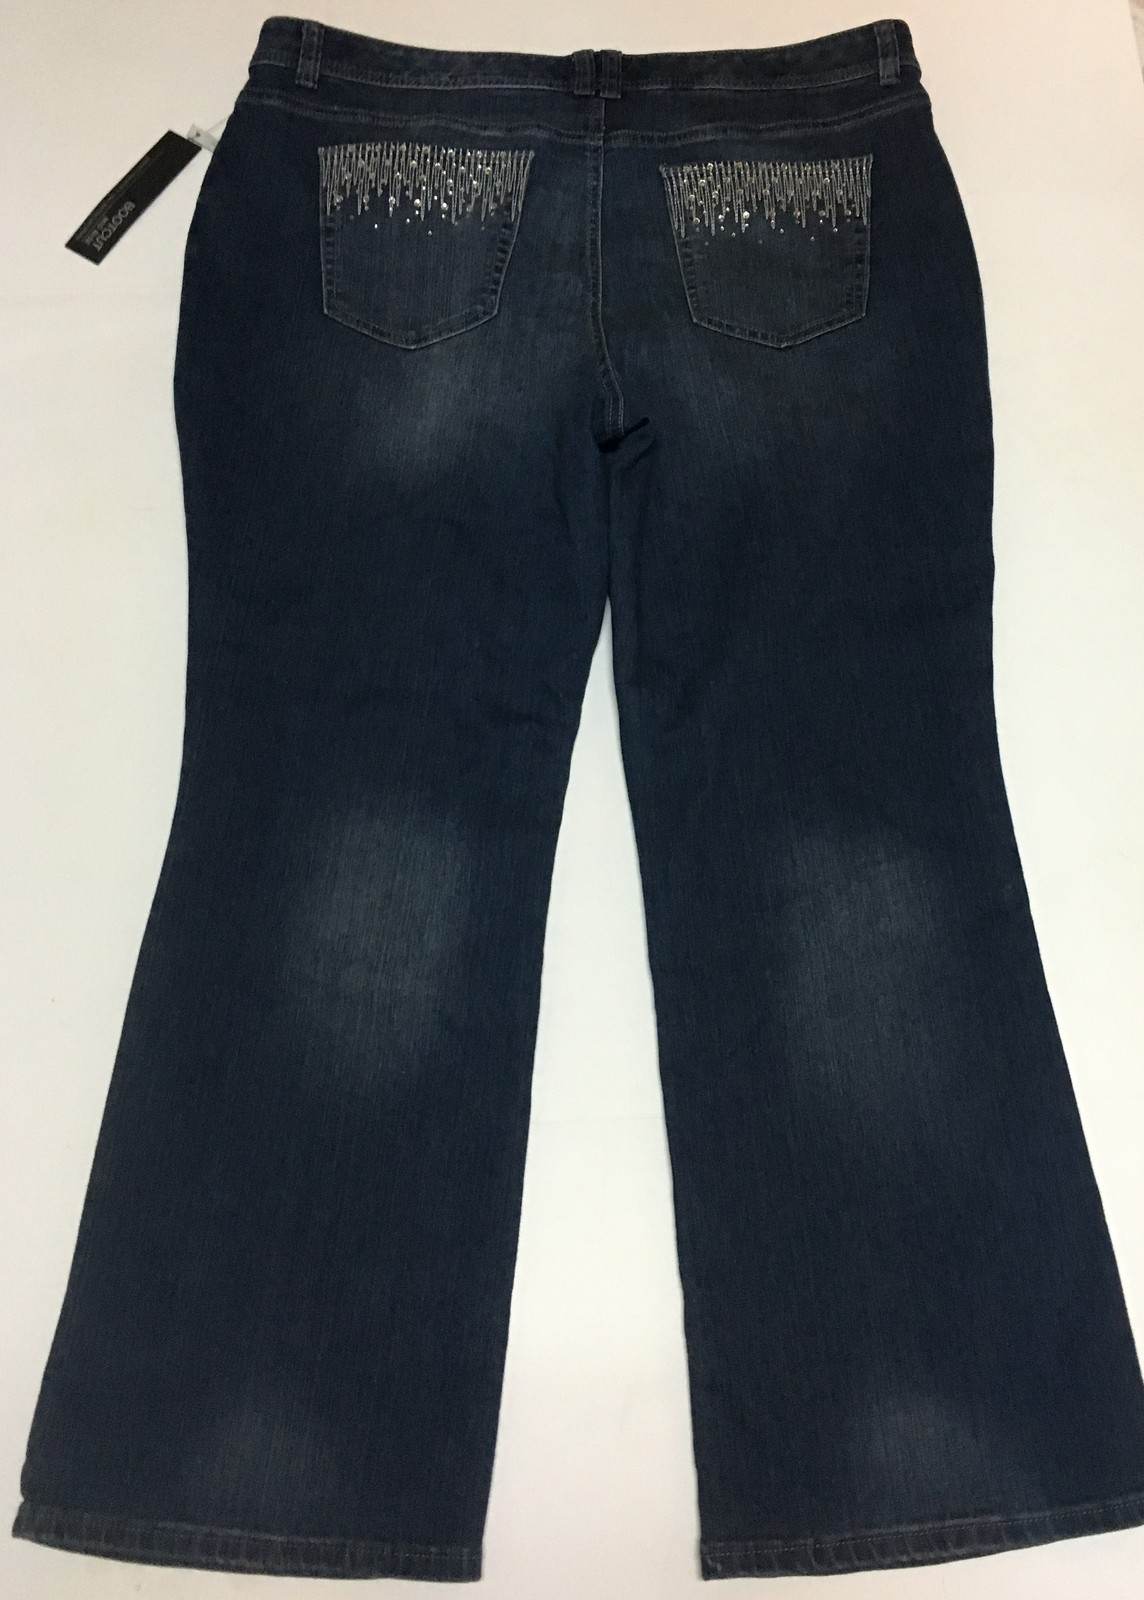 Apt 9 Boot Cut Blue Jeans Mid Rise Straight Hip & Thigh Sz 18S